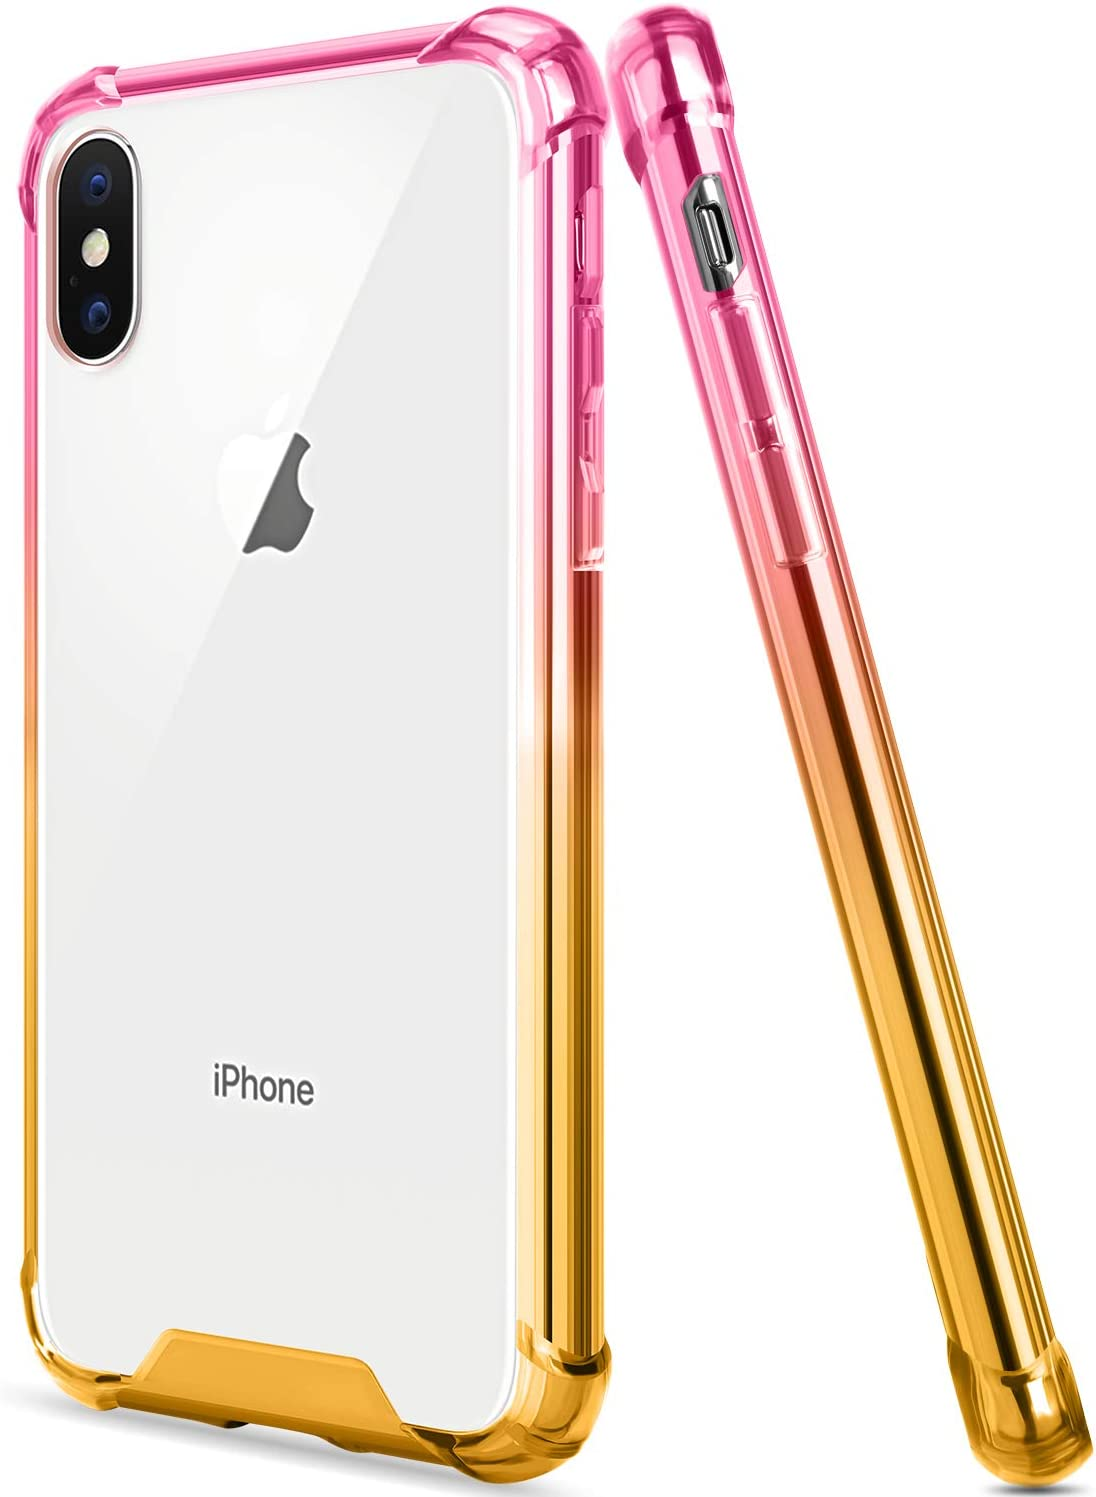 Salawat Compatible iPhone Xs Max Case, Clear iPhone Xs Max Case Cute Anti Scratch Slim Phone Case Cover Reinforced TPU Bumper Shockproof Protective Case for iPhone Xs Max 6.5inch 2018 (Pink Gold)